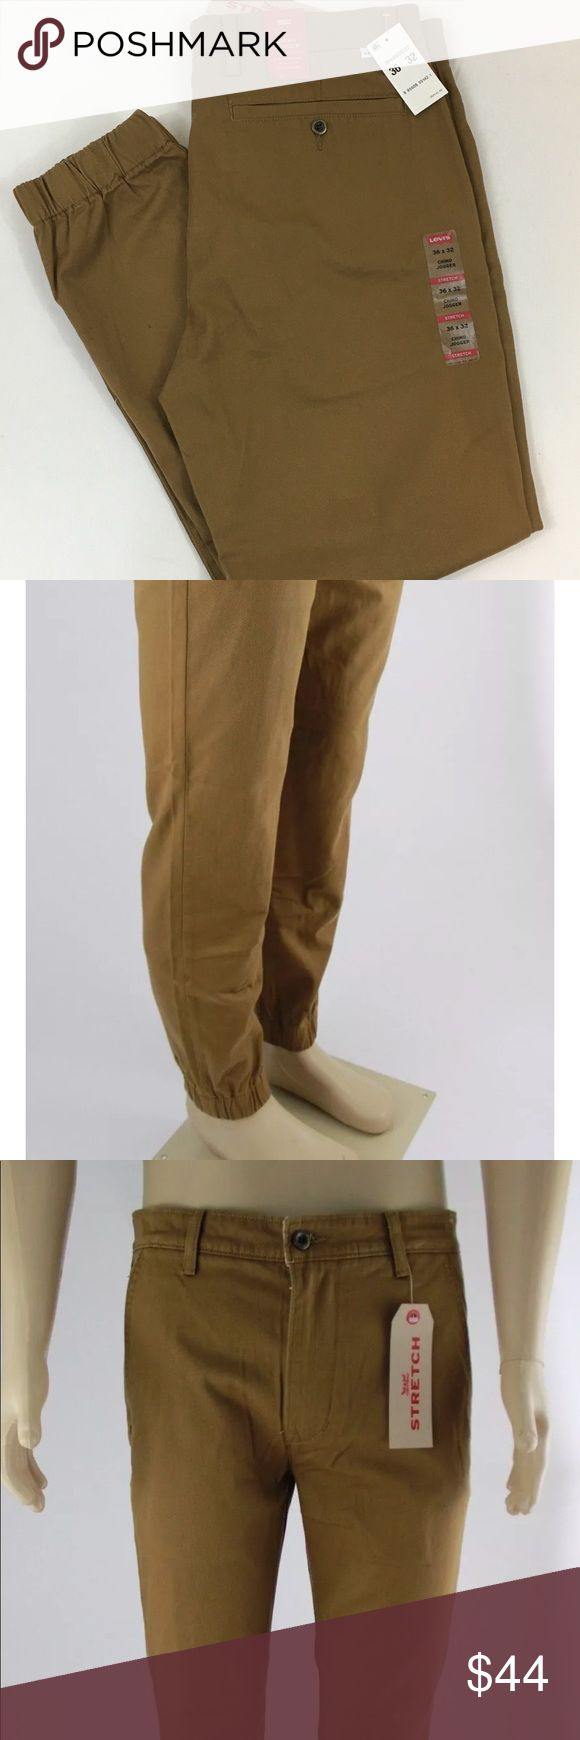 Men's Levi's Chino Joggers Caraway/Carmel brown Stretch chino Joggers by Levi's 36x32 Levi's Pants Chinos & Khakis